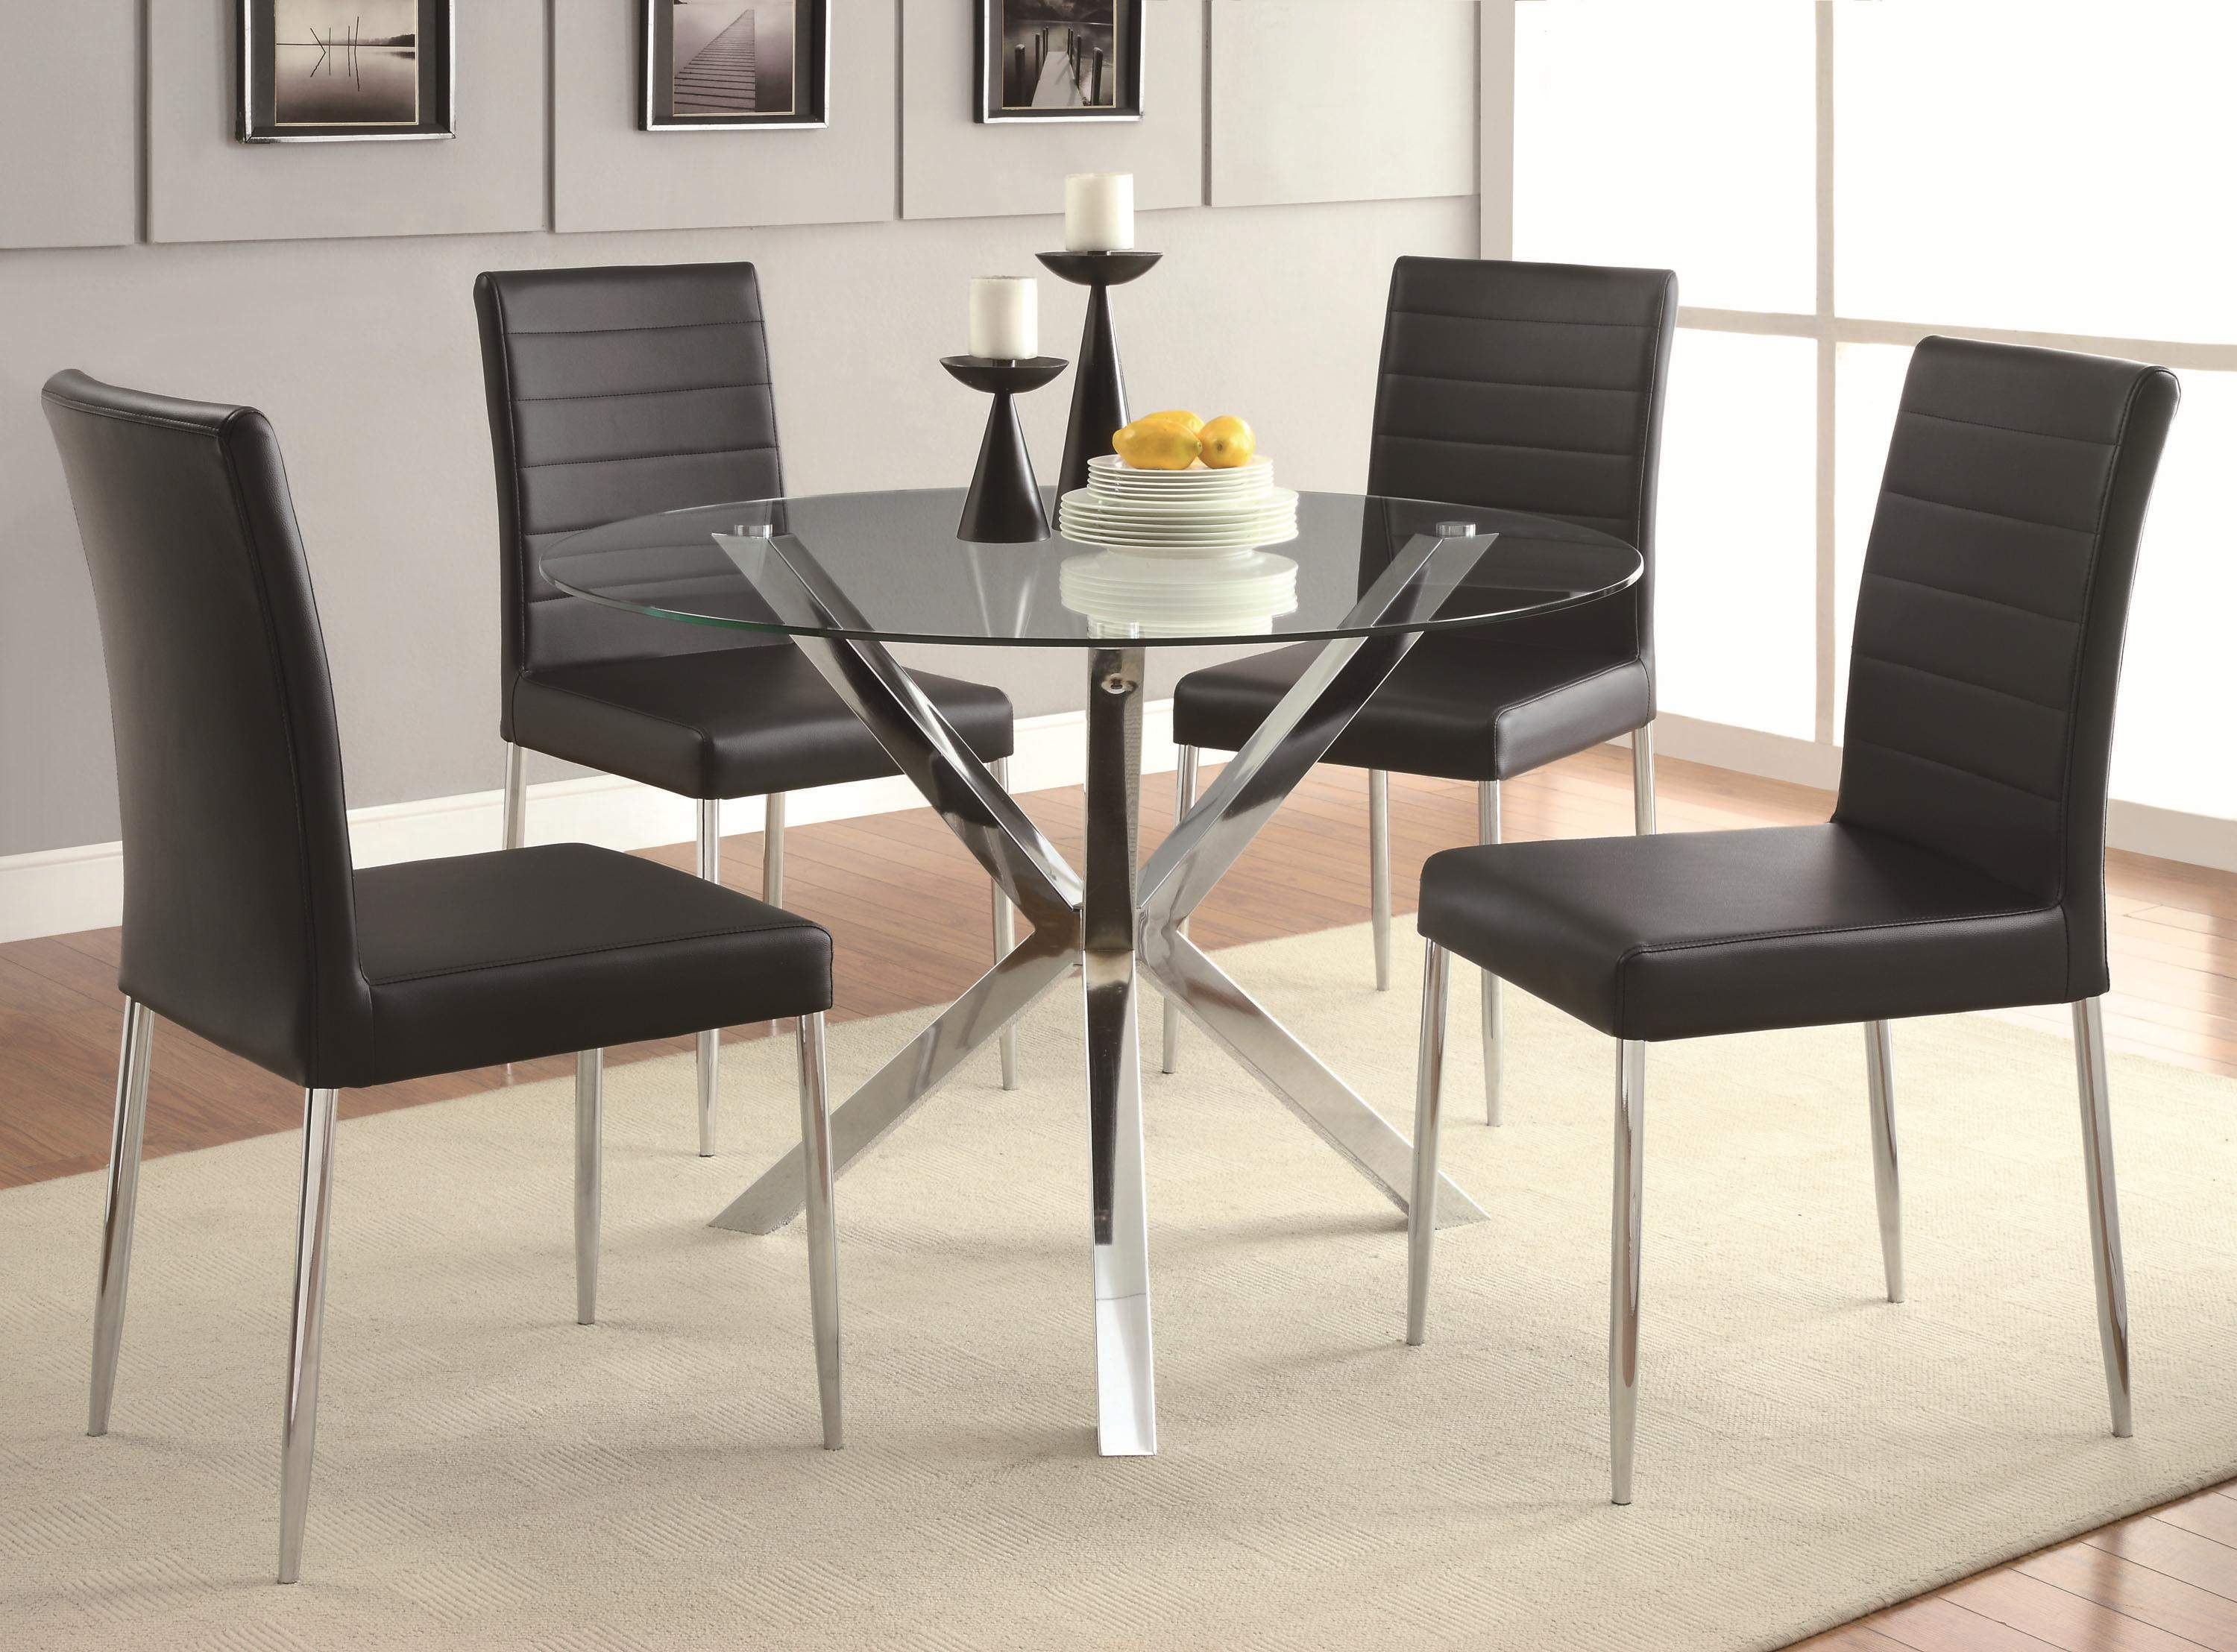 Vance Contemporary Glass Top Dining Table With Unique Chrome Base Quality Furniture At Affordable Prices In Philadelphia Main Line Pa